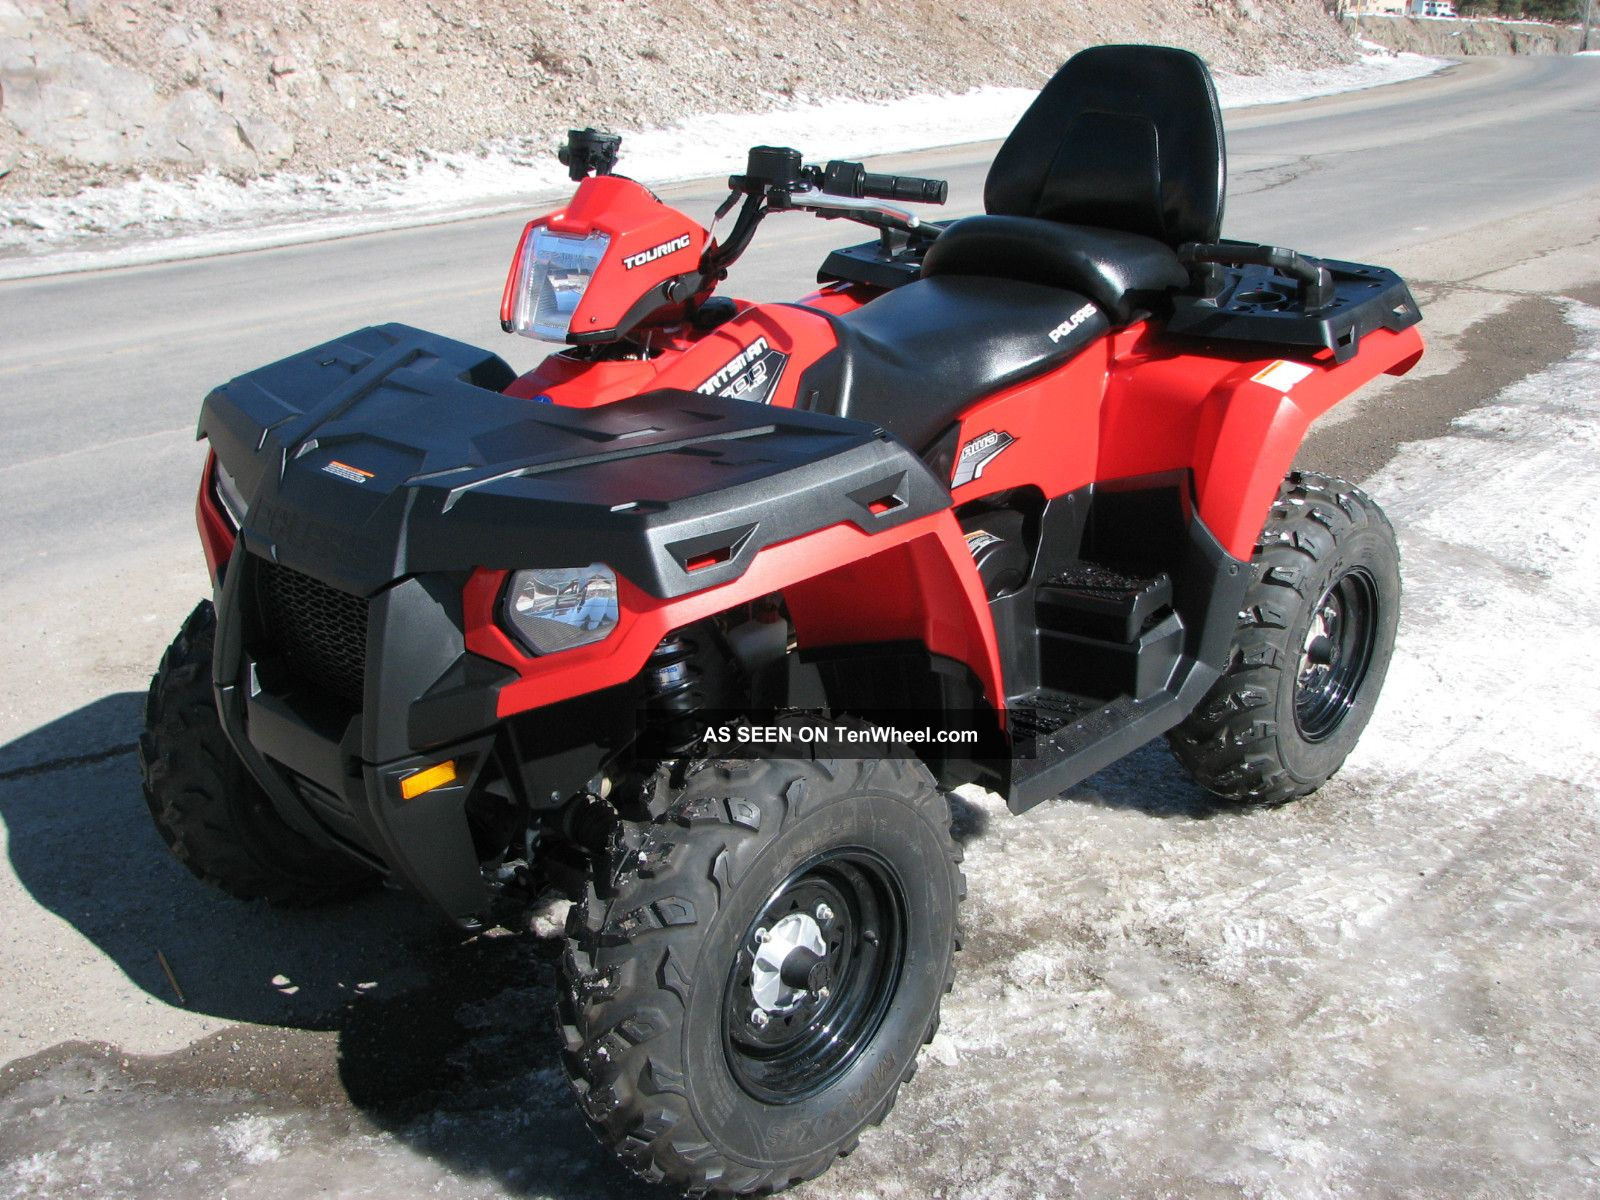 2012 polaris sportsman touring 500. Black Bedroom Furniture Sets. Home Design Ideas